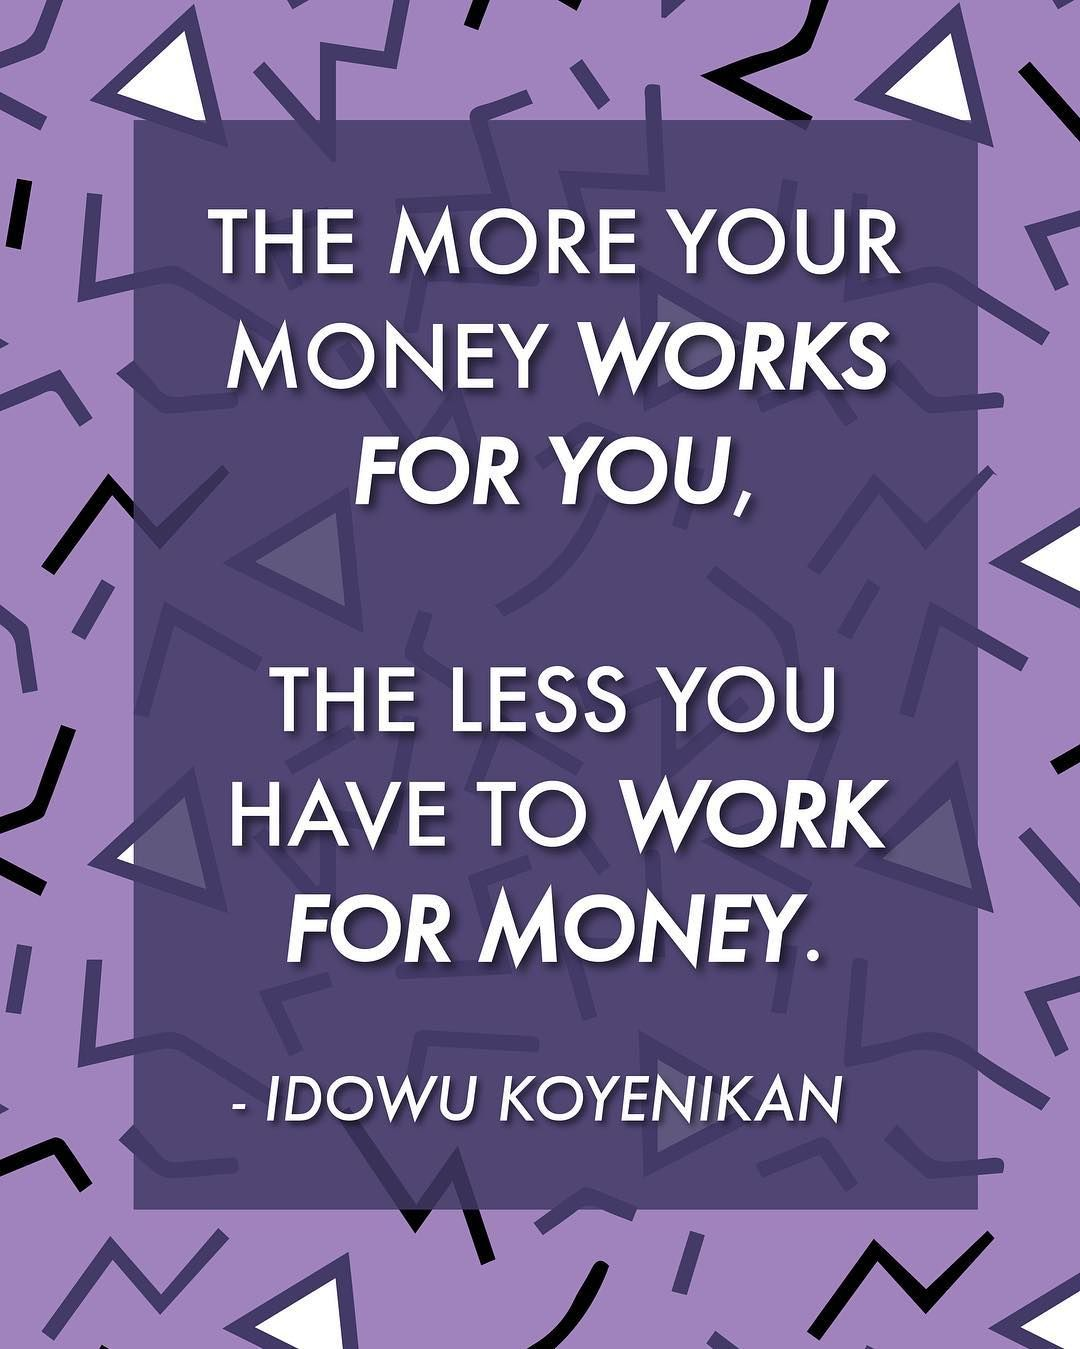 Don't just work for your money make it work for you